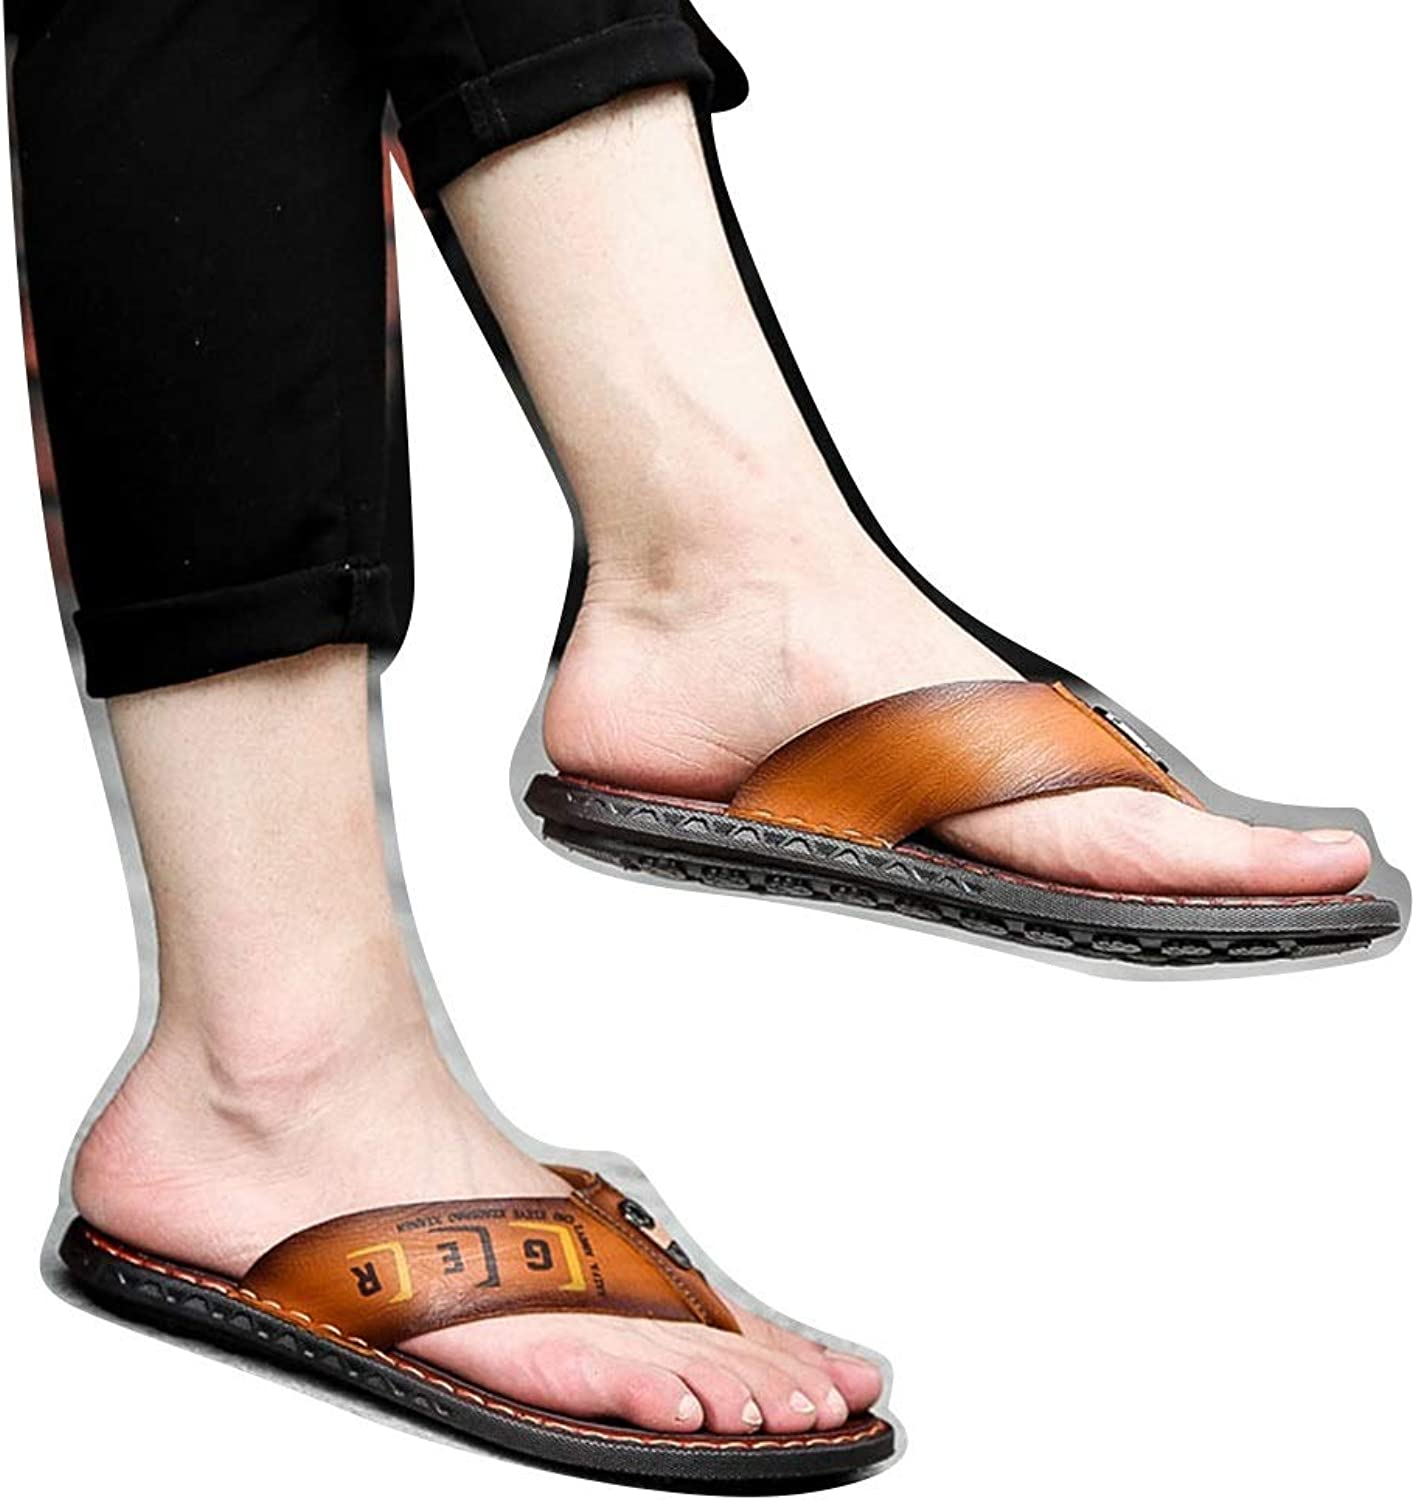 Men's Anti-Skid Flip Flops Summer Slippers Men's Leather Breathable Casual shoes (color   217yellow Brown, Size   41)